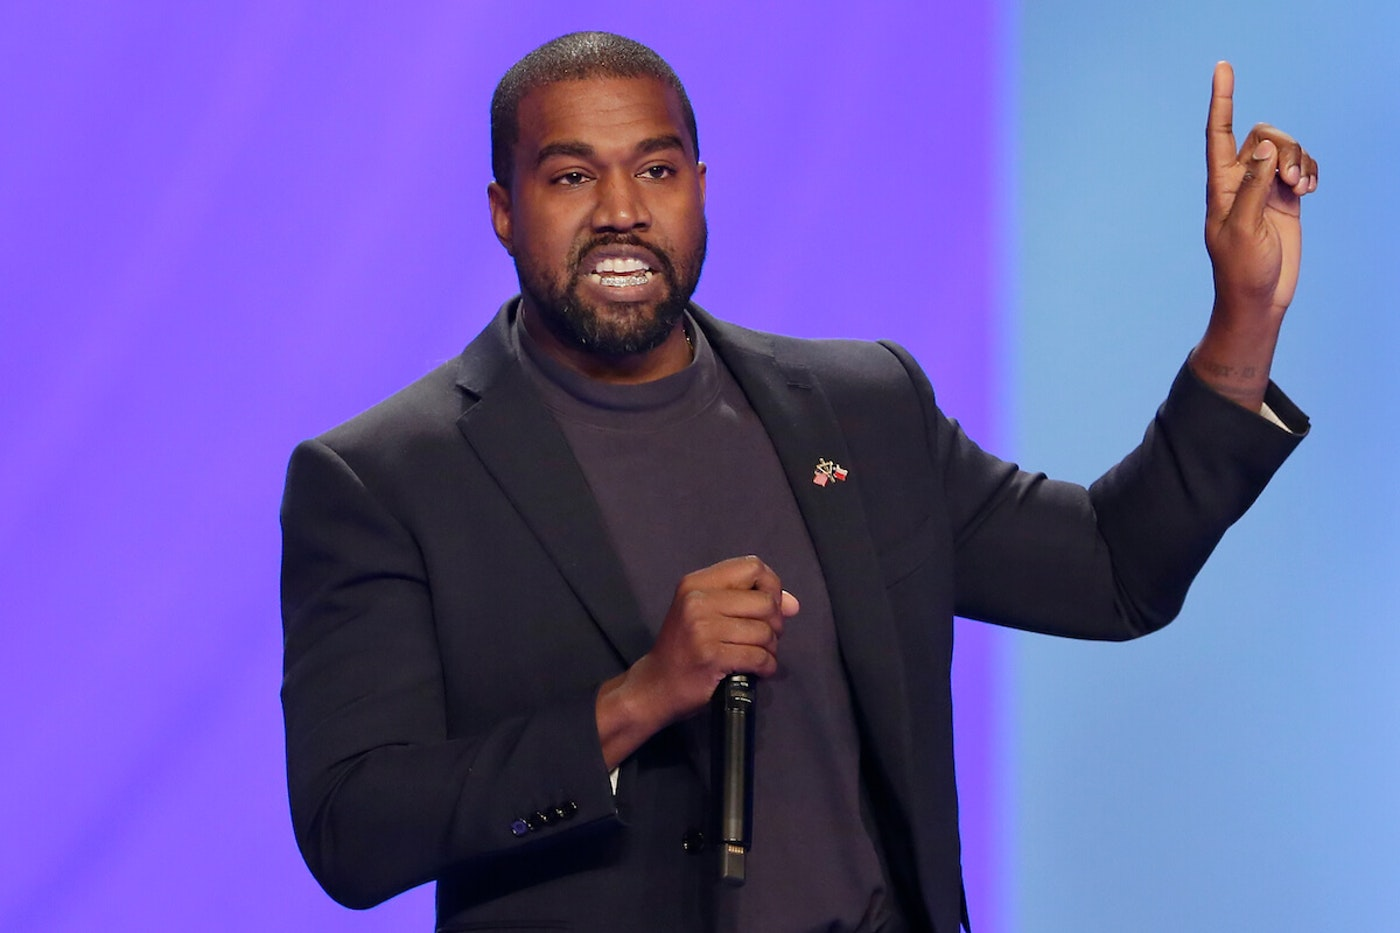 FILE - Kanye West answers questions during a church service, Nov. 17, 2019, in Houston, TX.